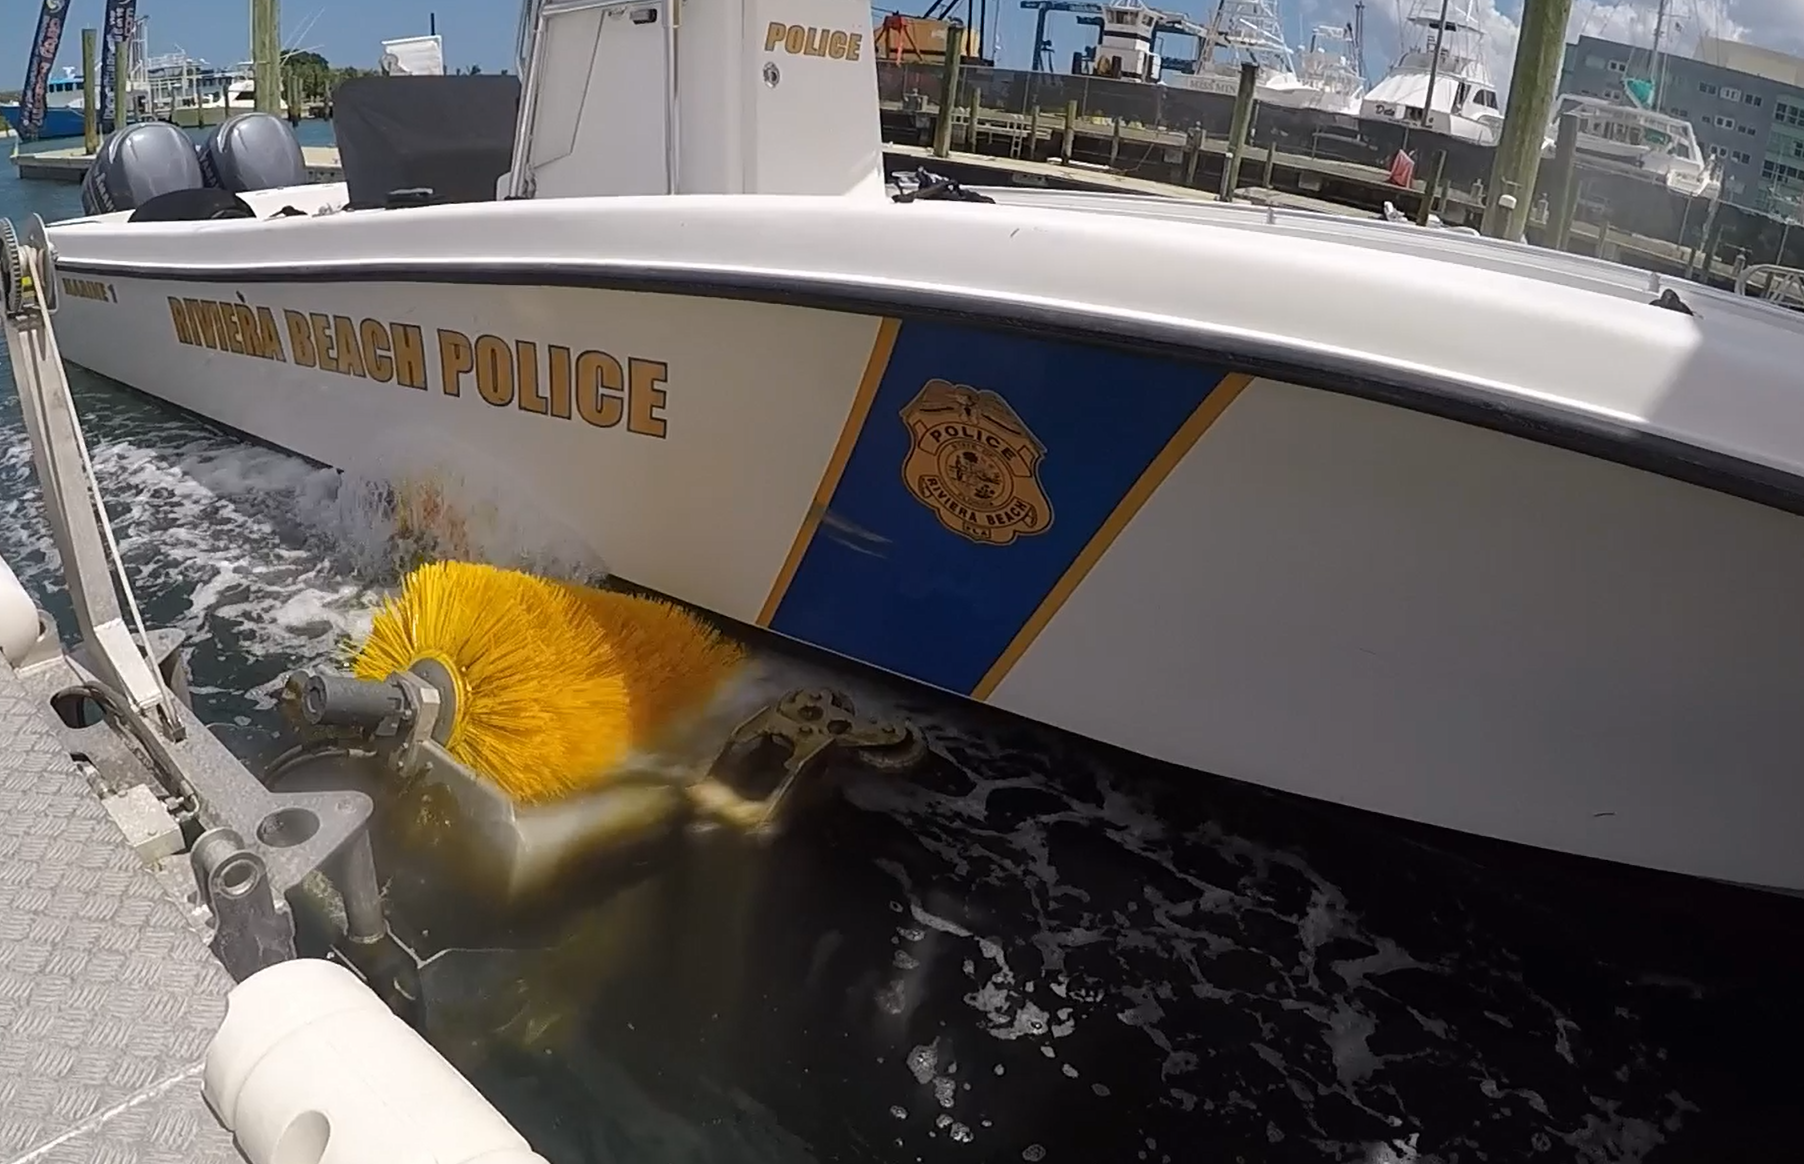 Drive-in Boatwash cleaning police boat